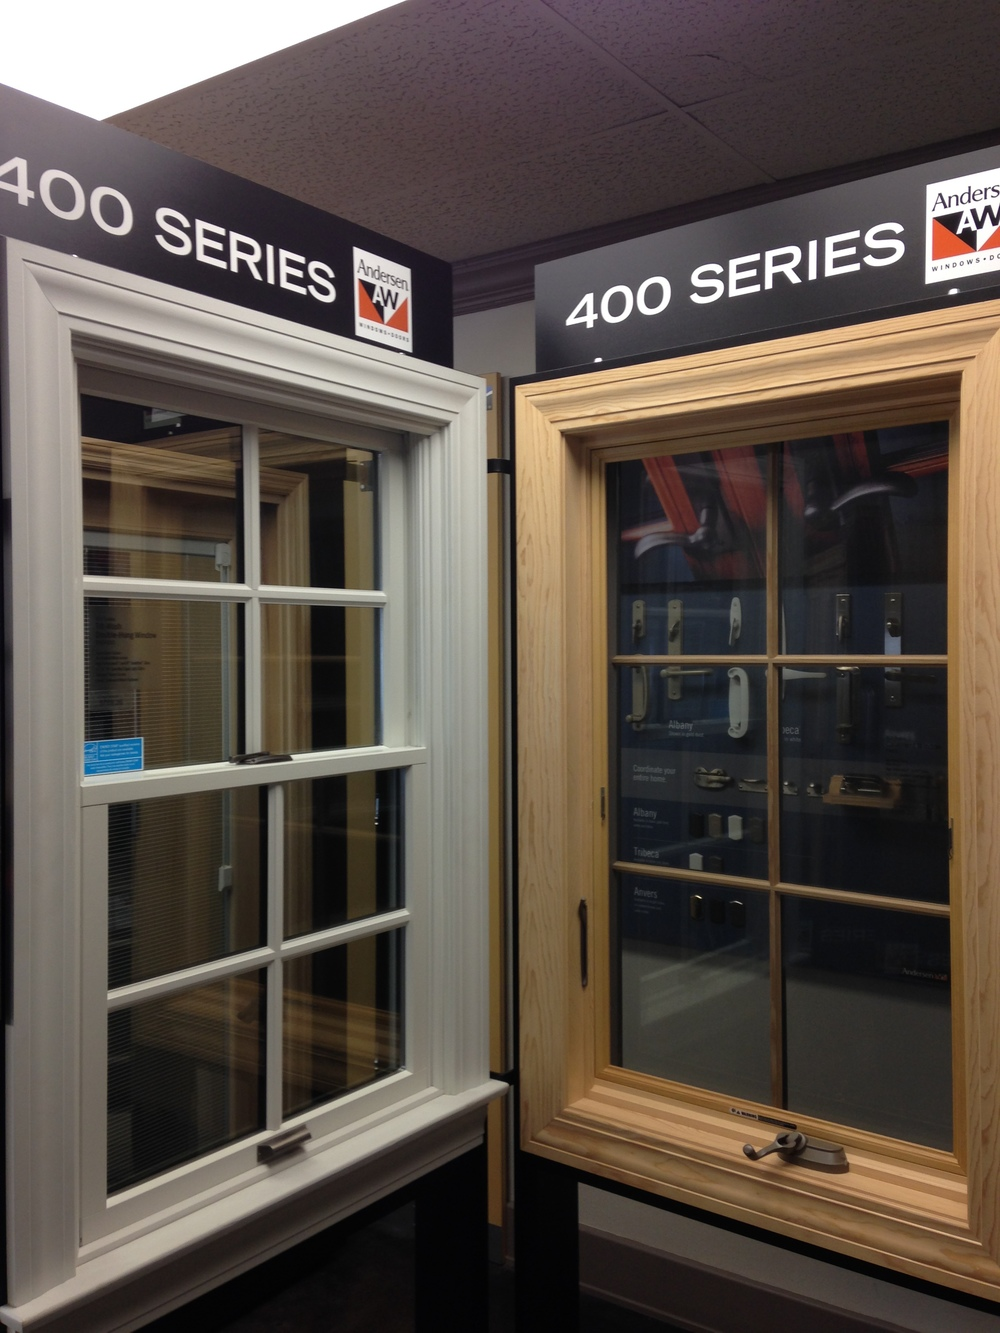 Anderson windows andersen windows - Ace Glass Carries Andersen 400 Series Windows And Doors